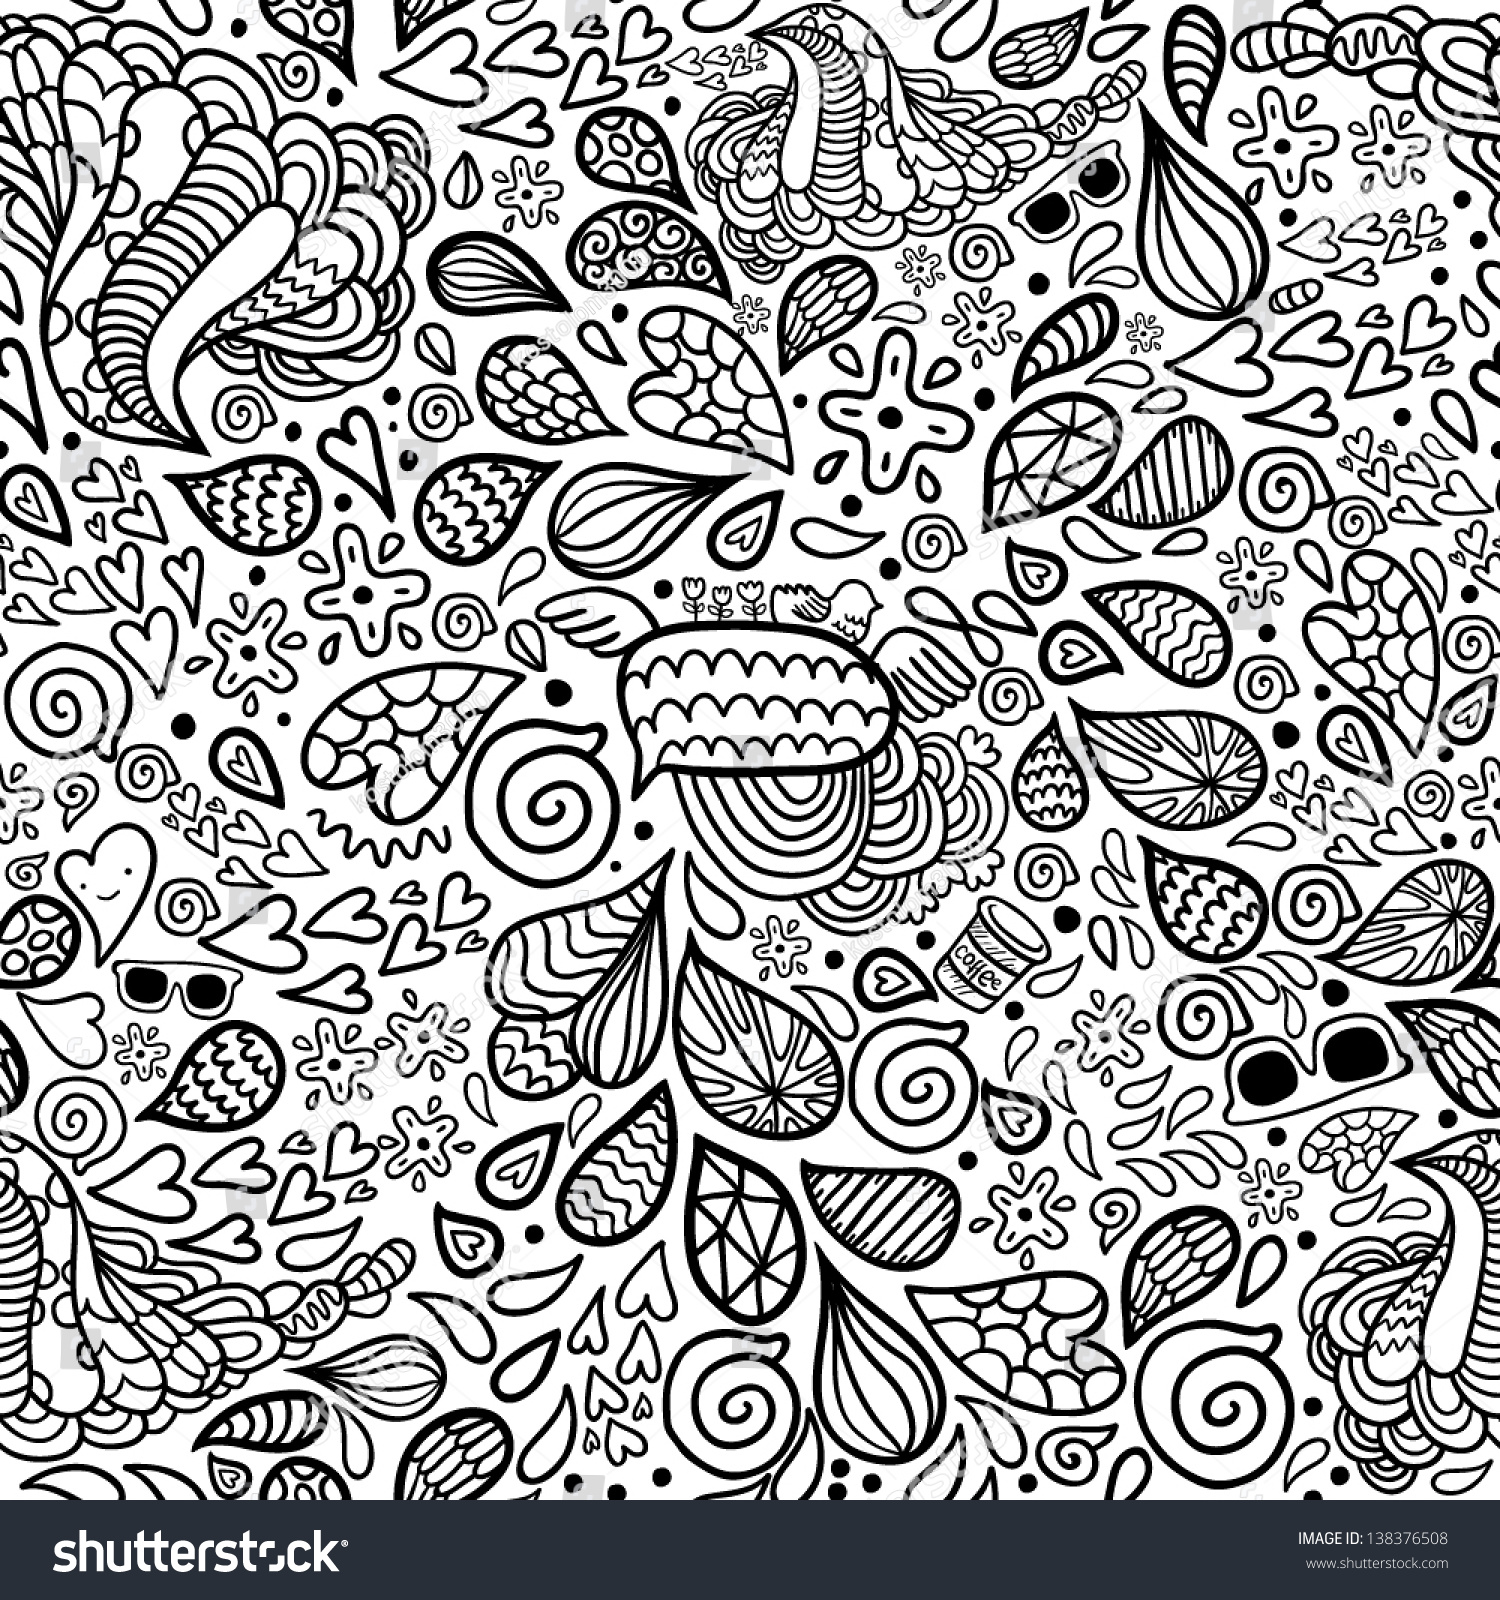 Cool Cute Cartoon Doodle Hipster Seamless Pattern Stock Vector With Coloring Book Wallpaper